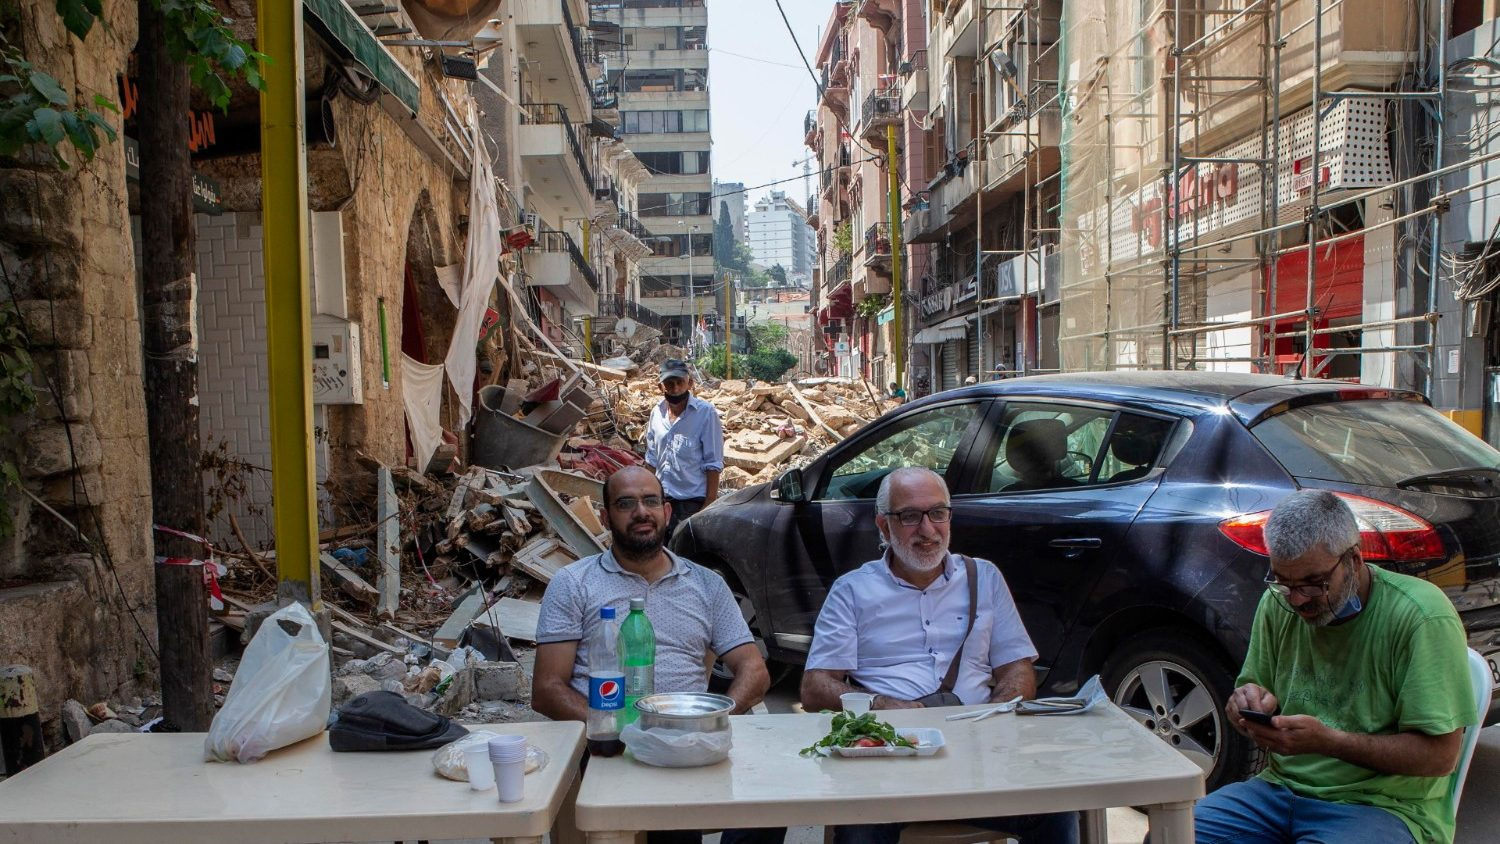 Order of Malta in Beirut: a heartbroken city in an ever-wounded country - Vatican News